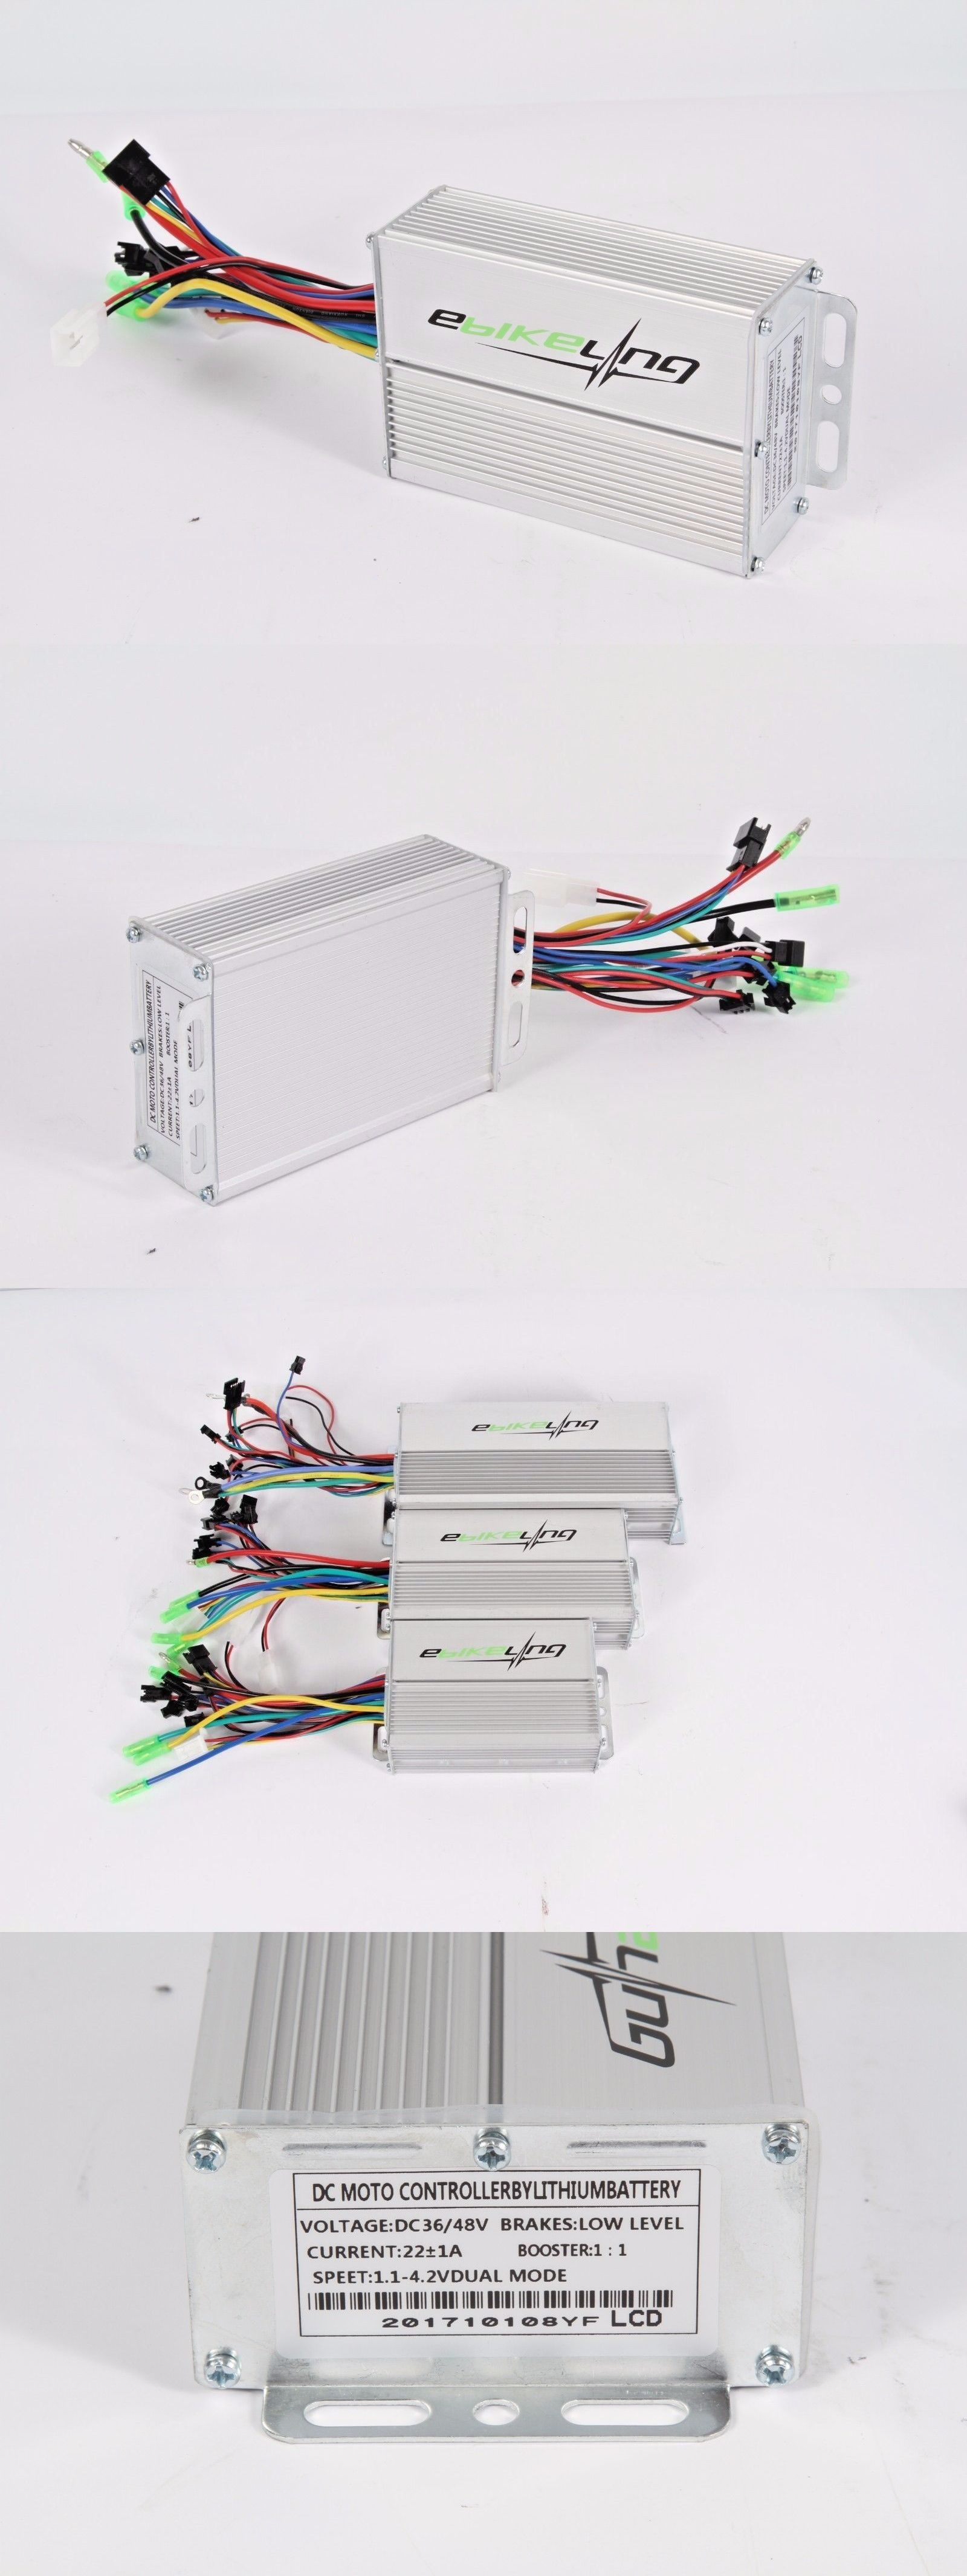 Electric Bicycle Components 177814 36 48v Brushless Dc Motor Controller Bldc Ebike Lcd Led Ebikeling Buy It Now Only 4299 On Ebay